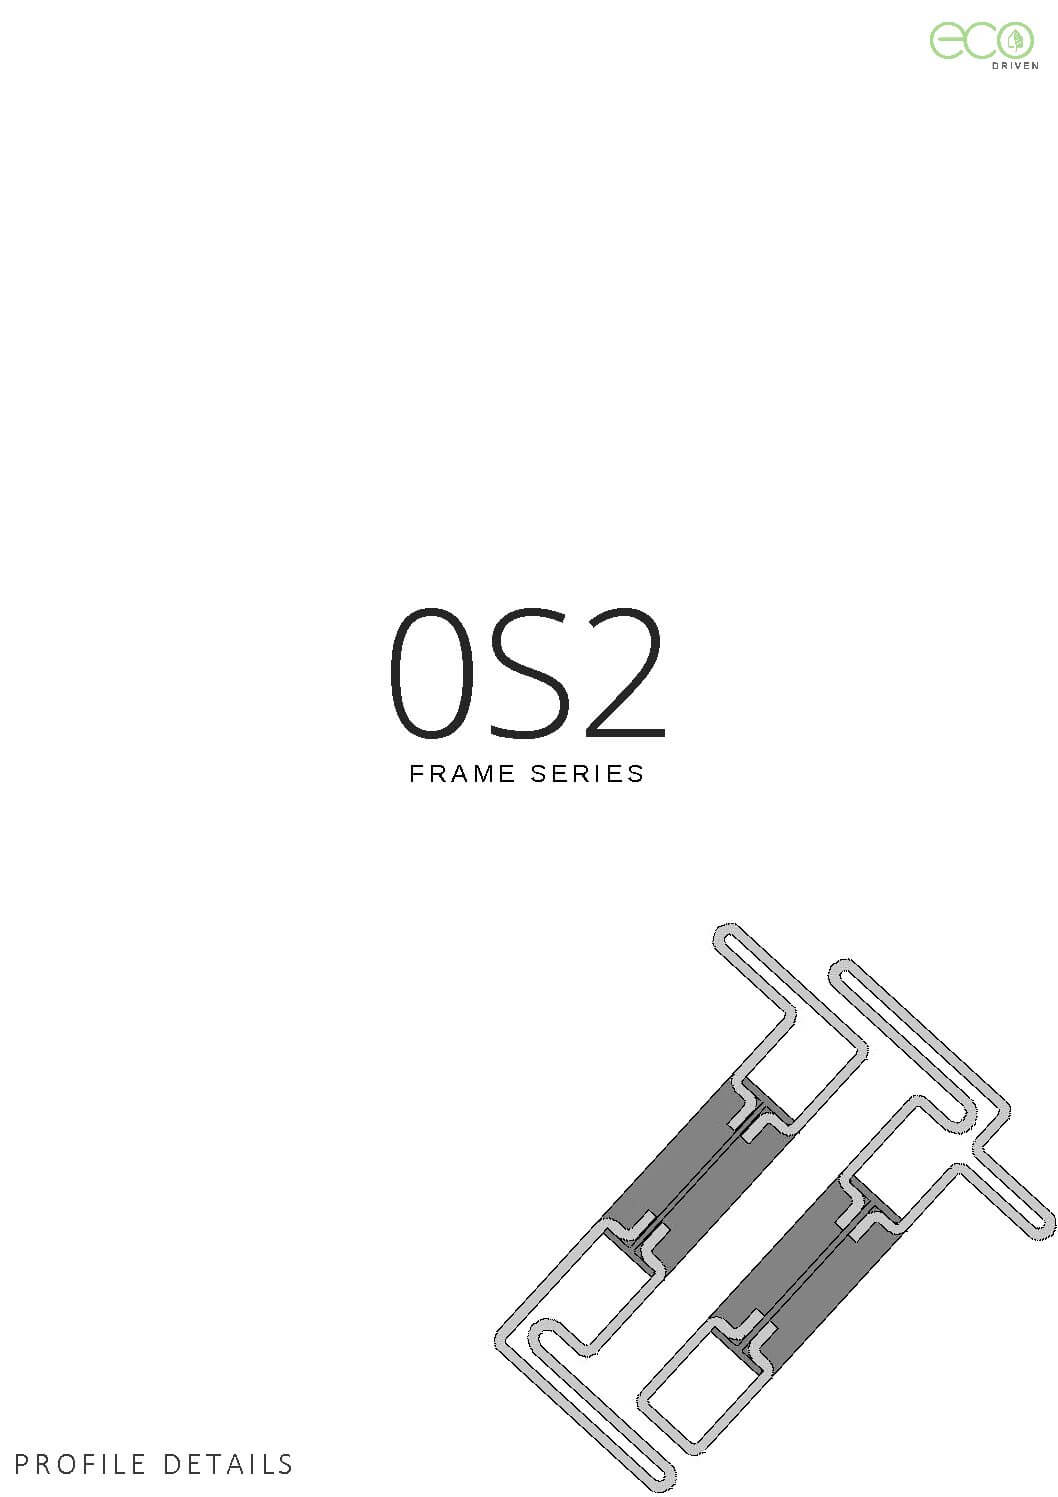 OS2 Section Details